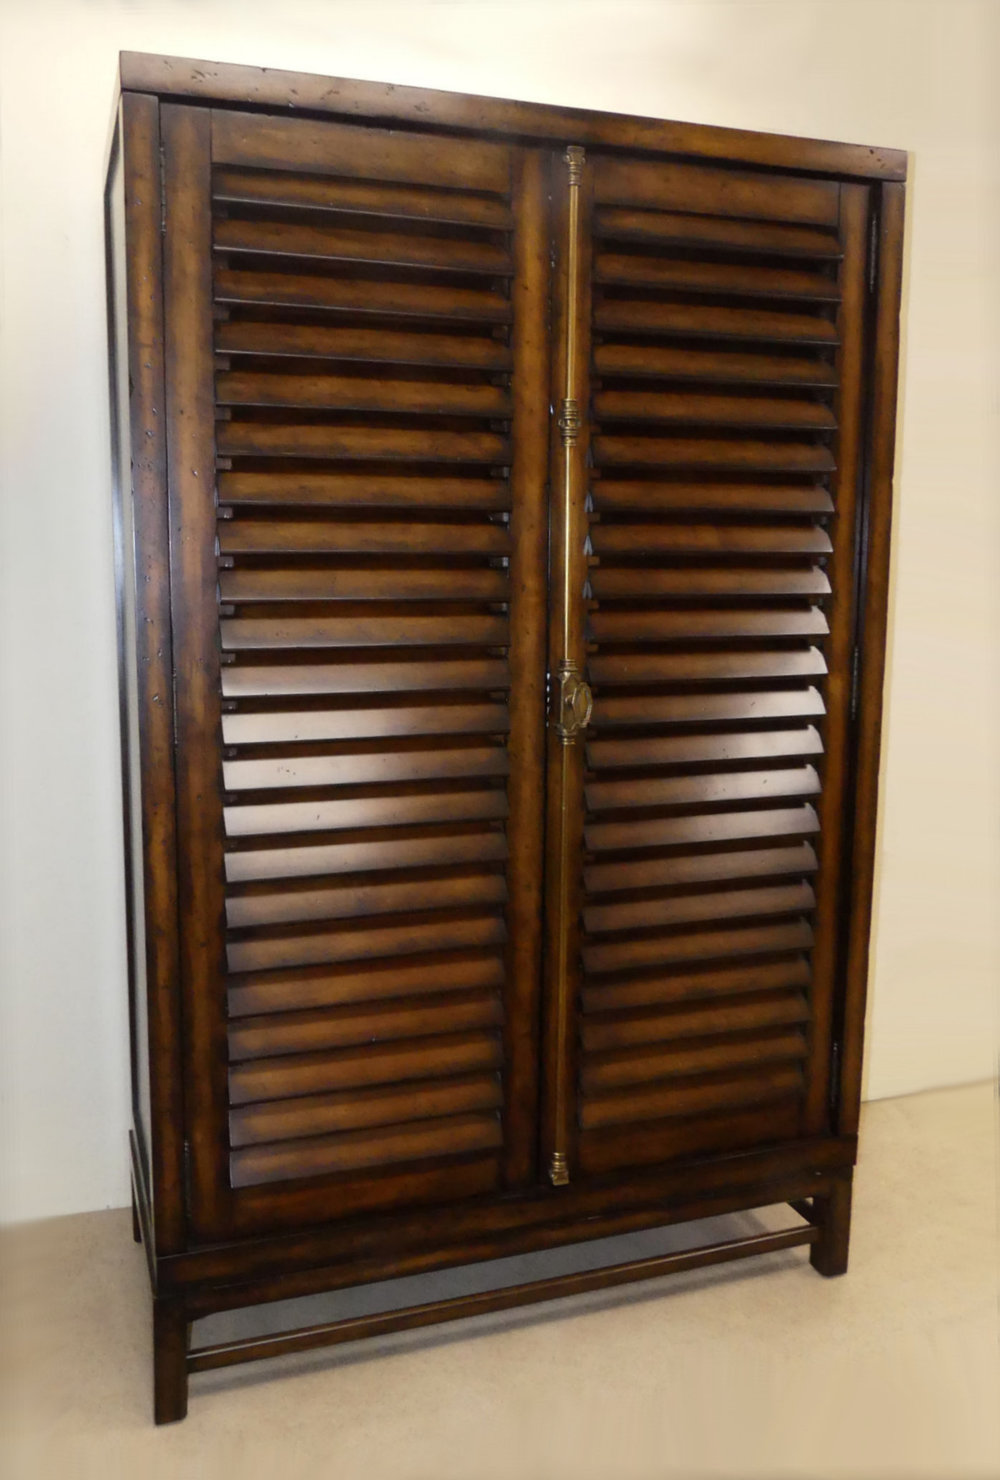 SOLD Ralph Lauren Cottage/Plantation Style Flat Screen Armoire Cabinet